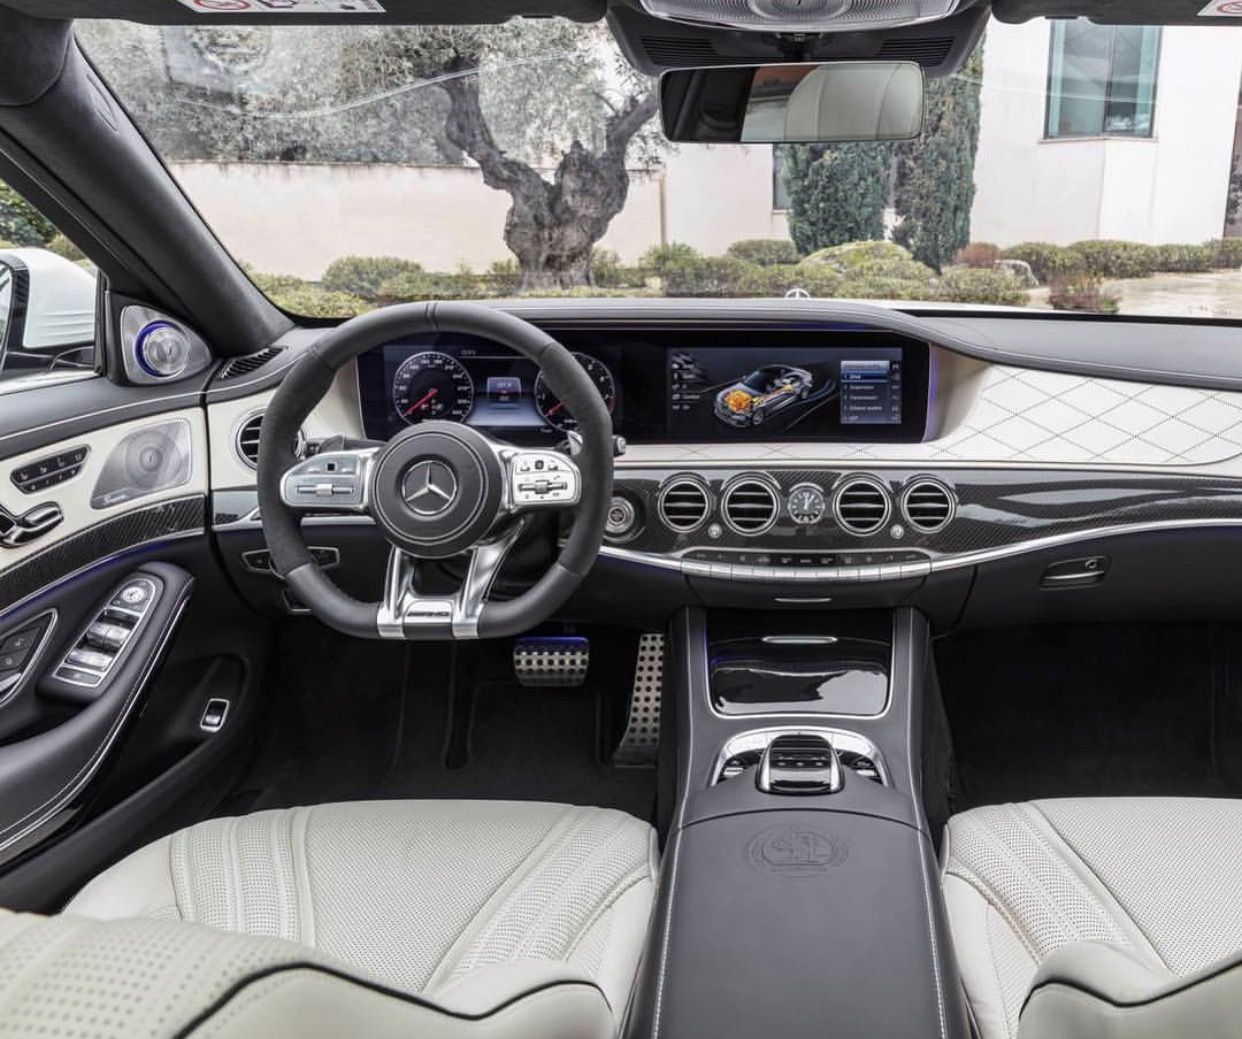 All new 2018 MercedesBenz S63 AMG interior. Luxury cars